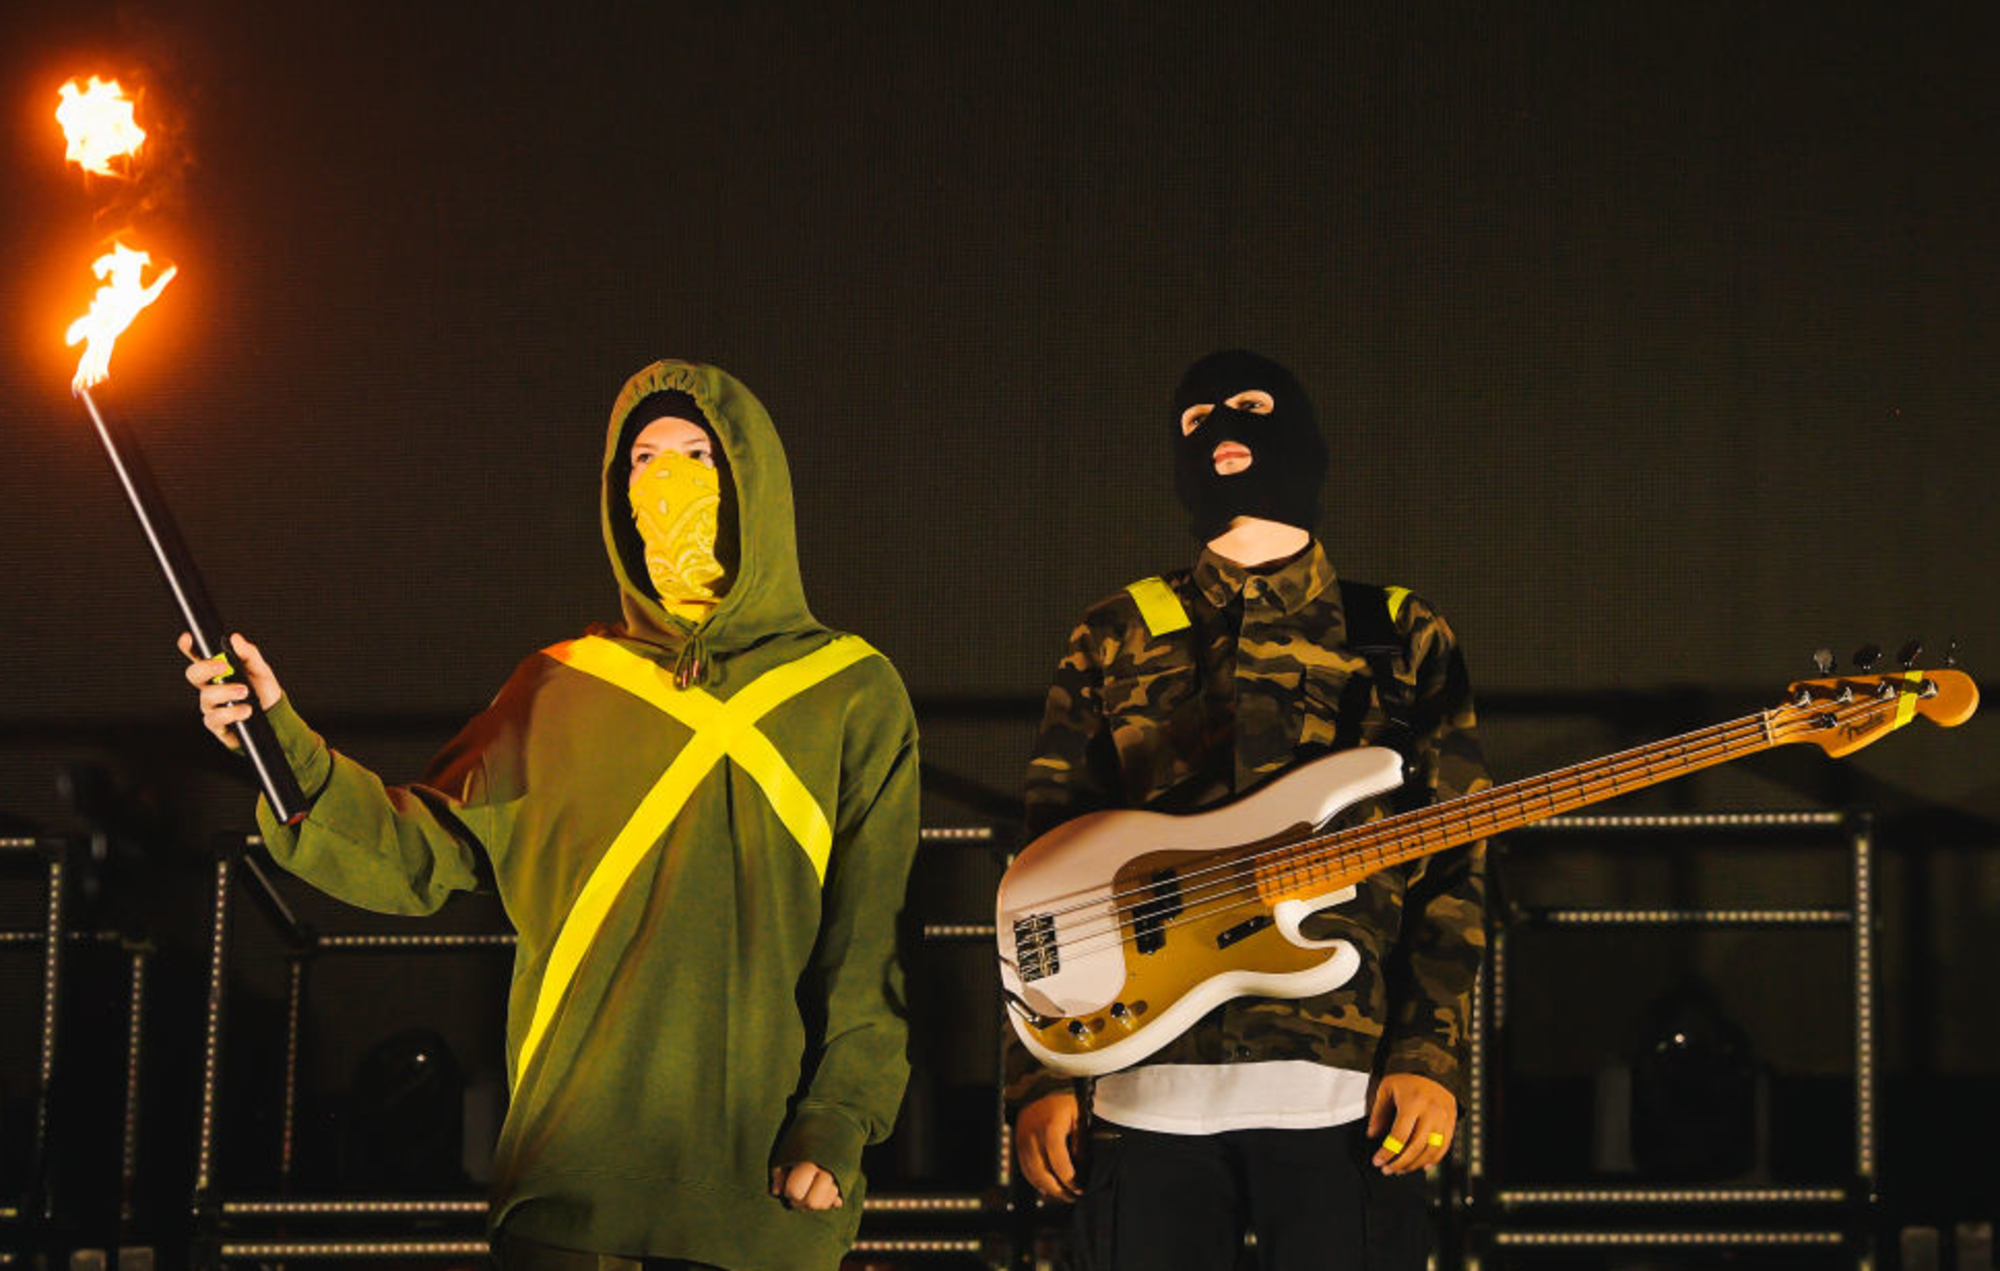 Twenty One Pilots Appear To Be Teasing A New Era And Fans Are Excited